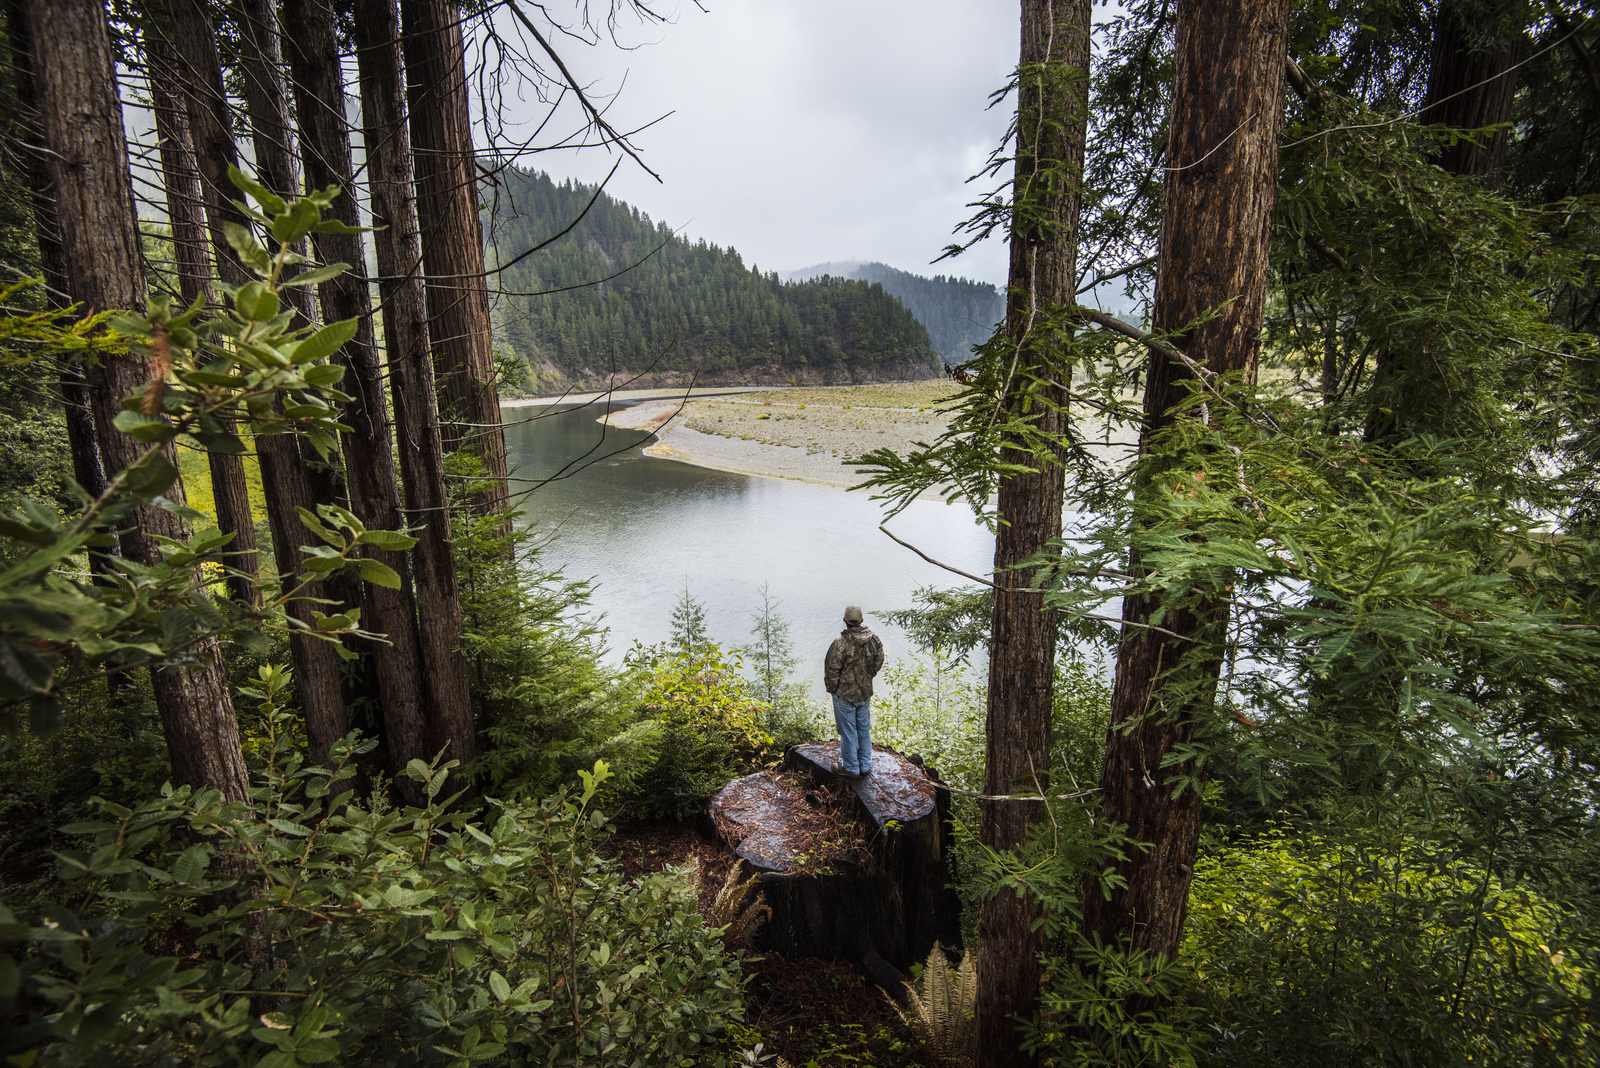 Fishing guide and Yurok tribal member, Pergish Carlson, stands atop a tree trunk and looks at the forests around the Klamath River in northern California.Photo © Kevin Arnold